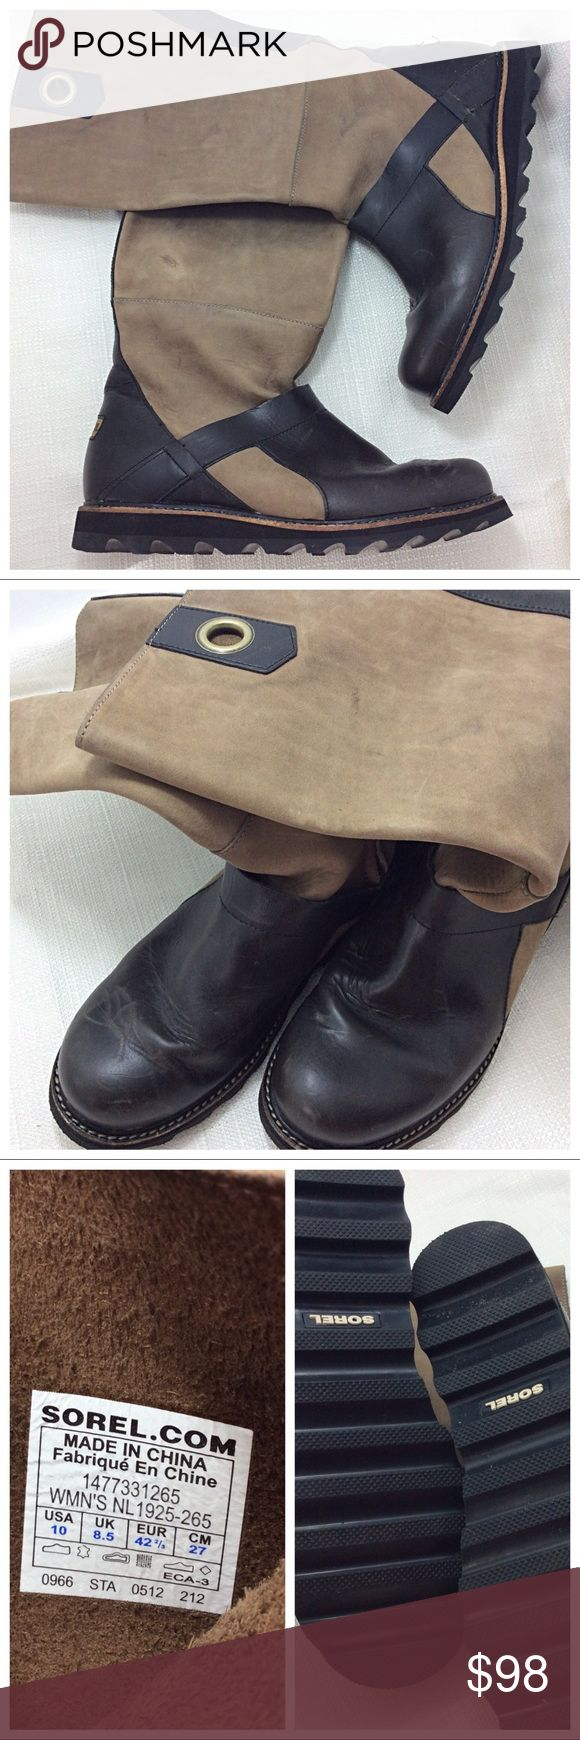 Sorel Riding Boots Heavyweight riding boots in two-tone brown suede/leather. Durable winter sole. Previously loved, wear marks as pictured. In otherwise excellent condition. Sorel Shoes Winter & Rain Boots